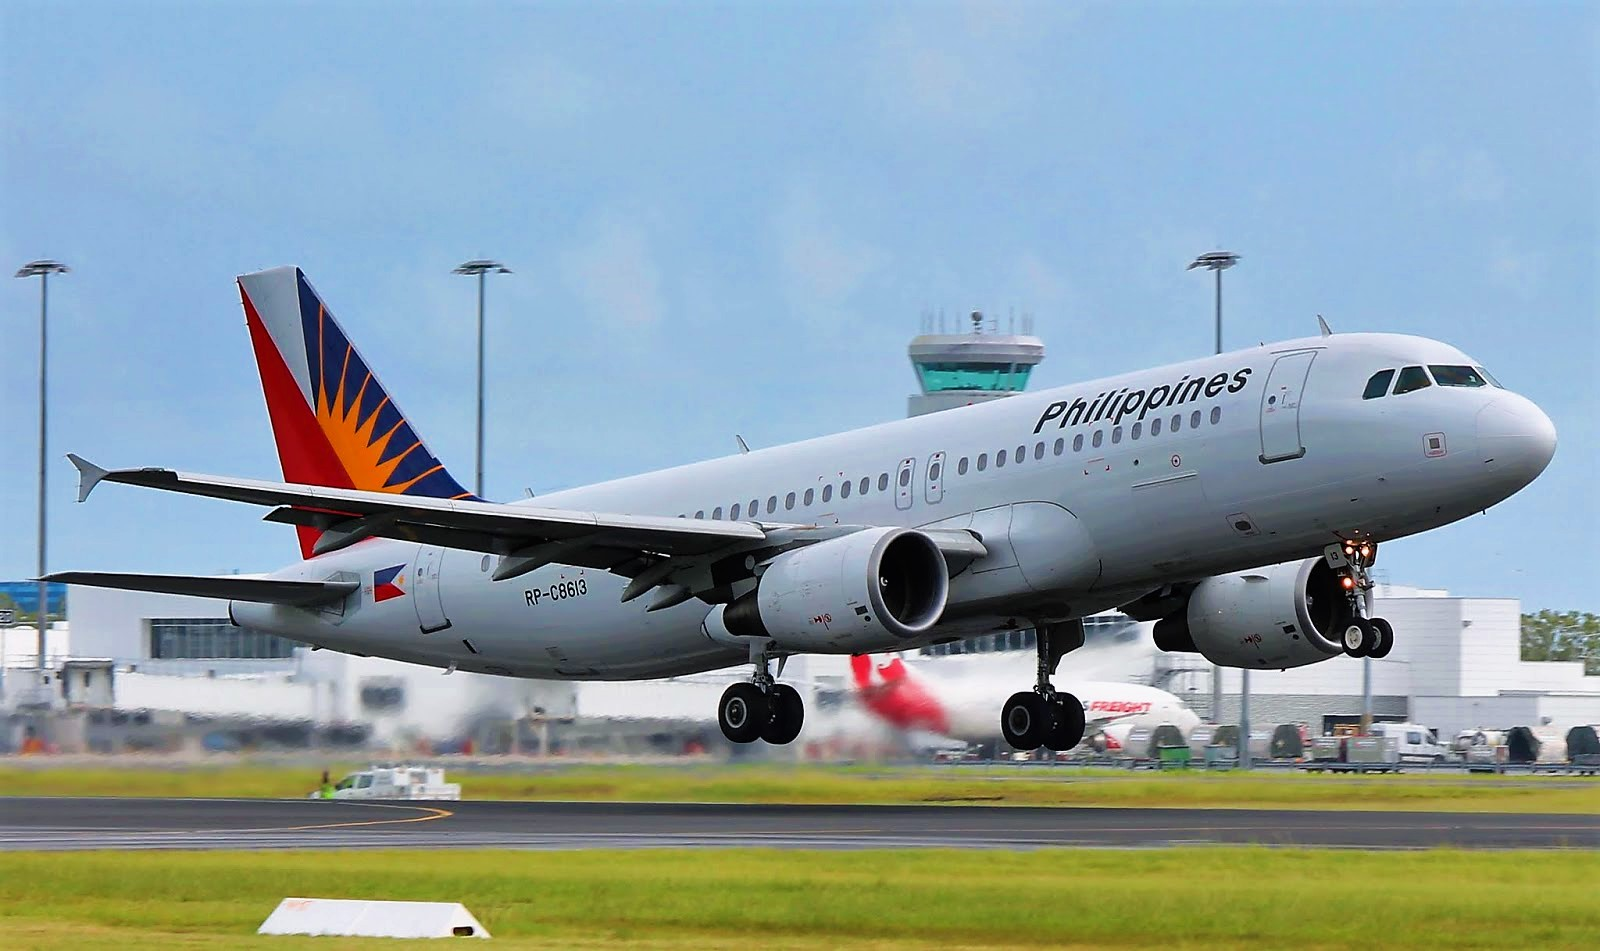 Philippine Airlines holds 'Beyond Promotional Fares' roundtrip promo as low as Dh 1,090